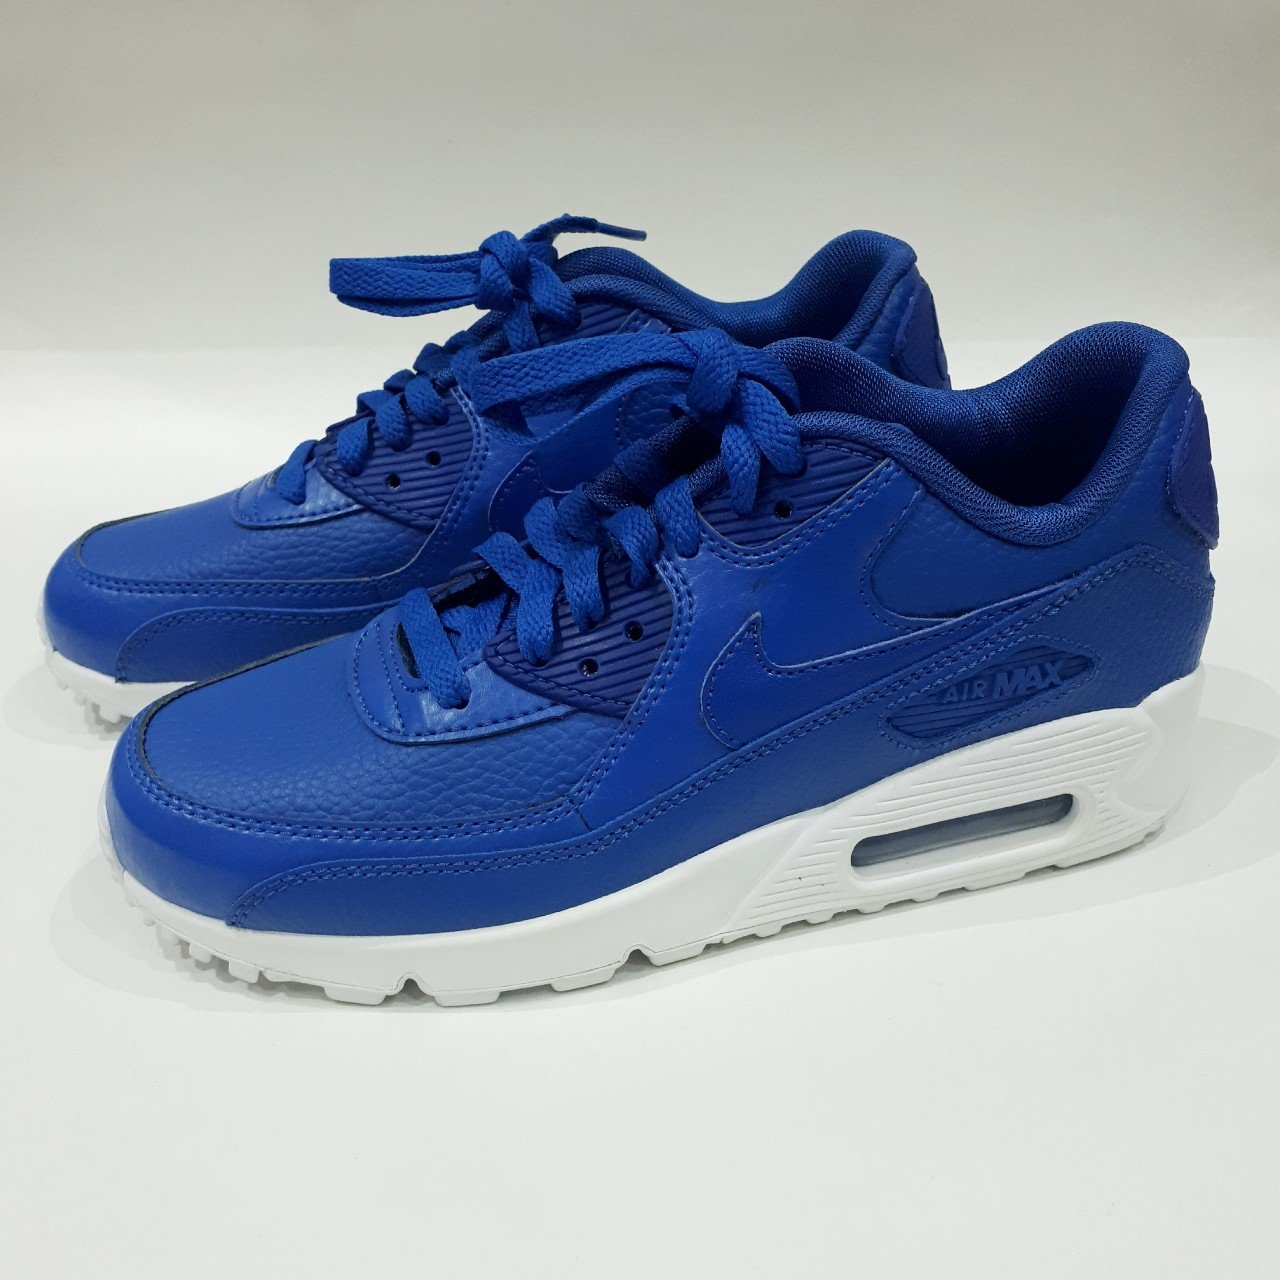 Royal Blue White Nike Air Max 90 LTR (GS). Size 5.5y UK 5. - Depop 3c1852eda542a